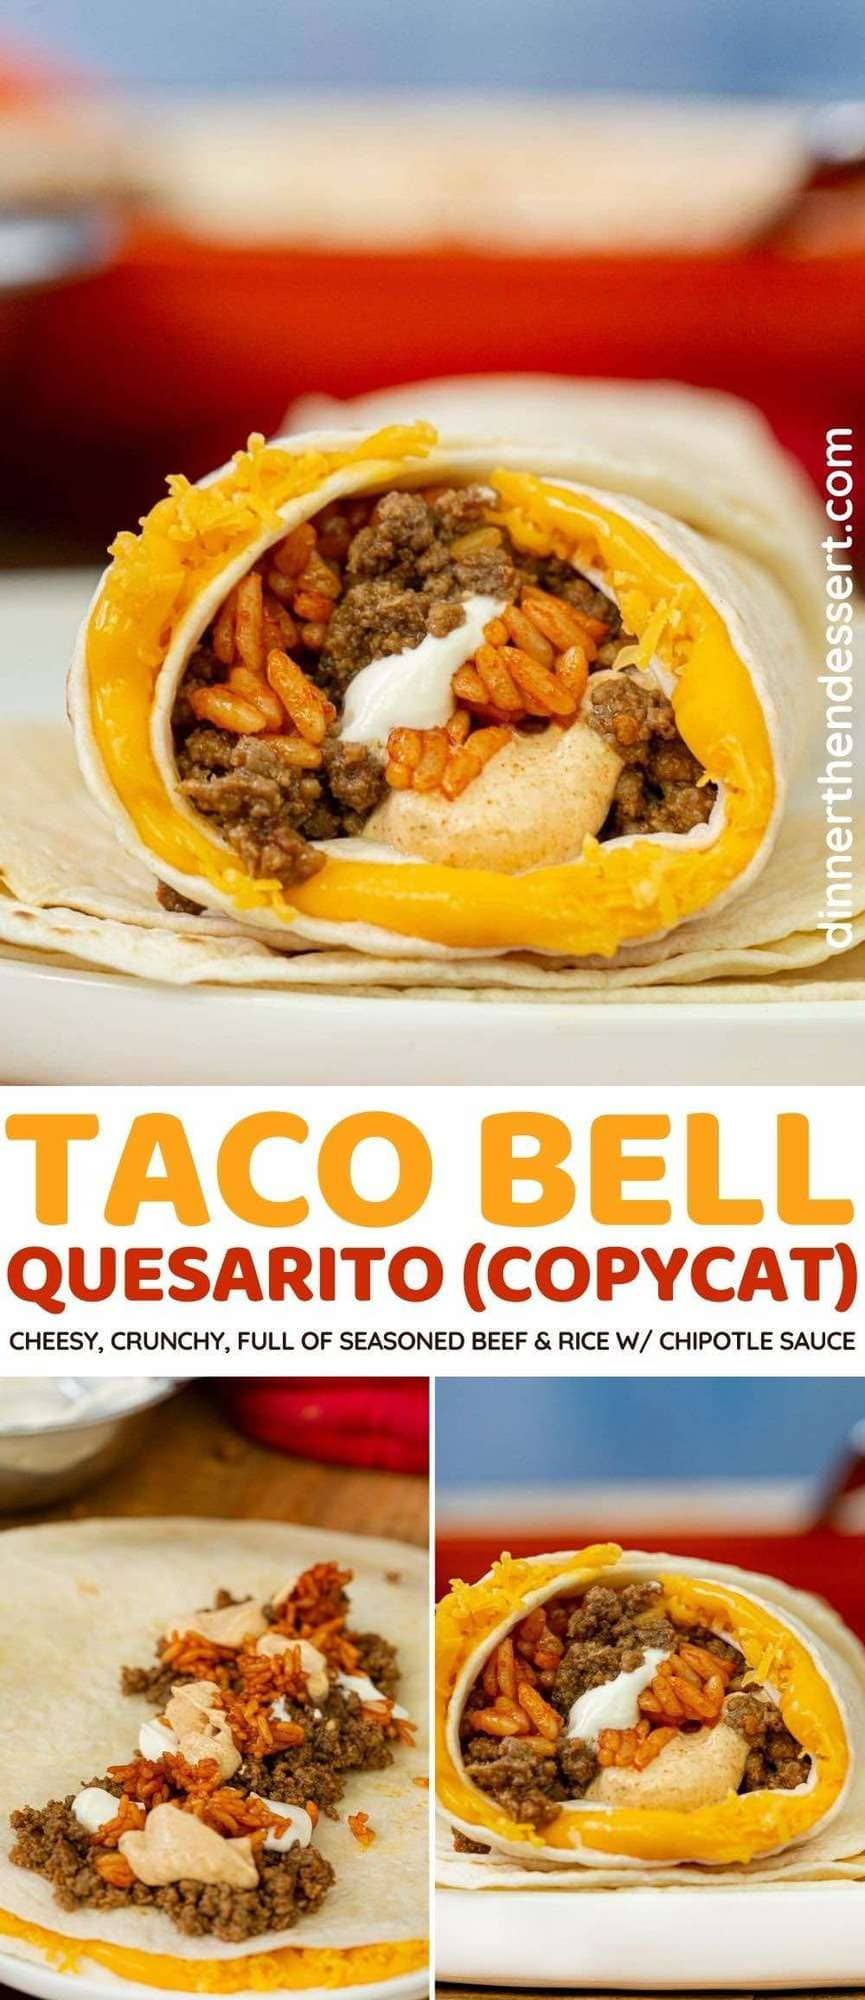 Taco Bell Quesarito Copycat Are Cheesy Crunchy Full Of Seasoned Beef And Rice Perfect Taco Bell Recipe With In 2021 Quesarito Recipe Beef Recipes Copykat Recipes